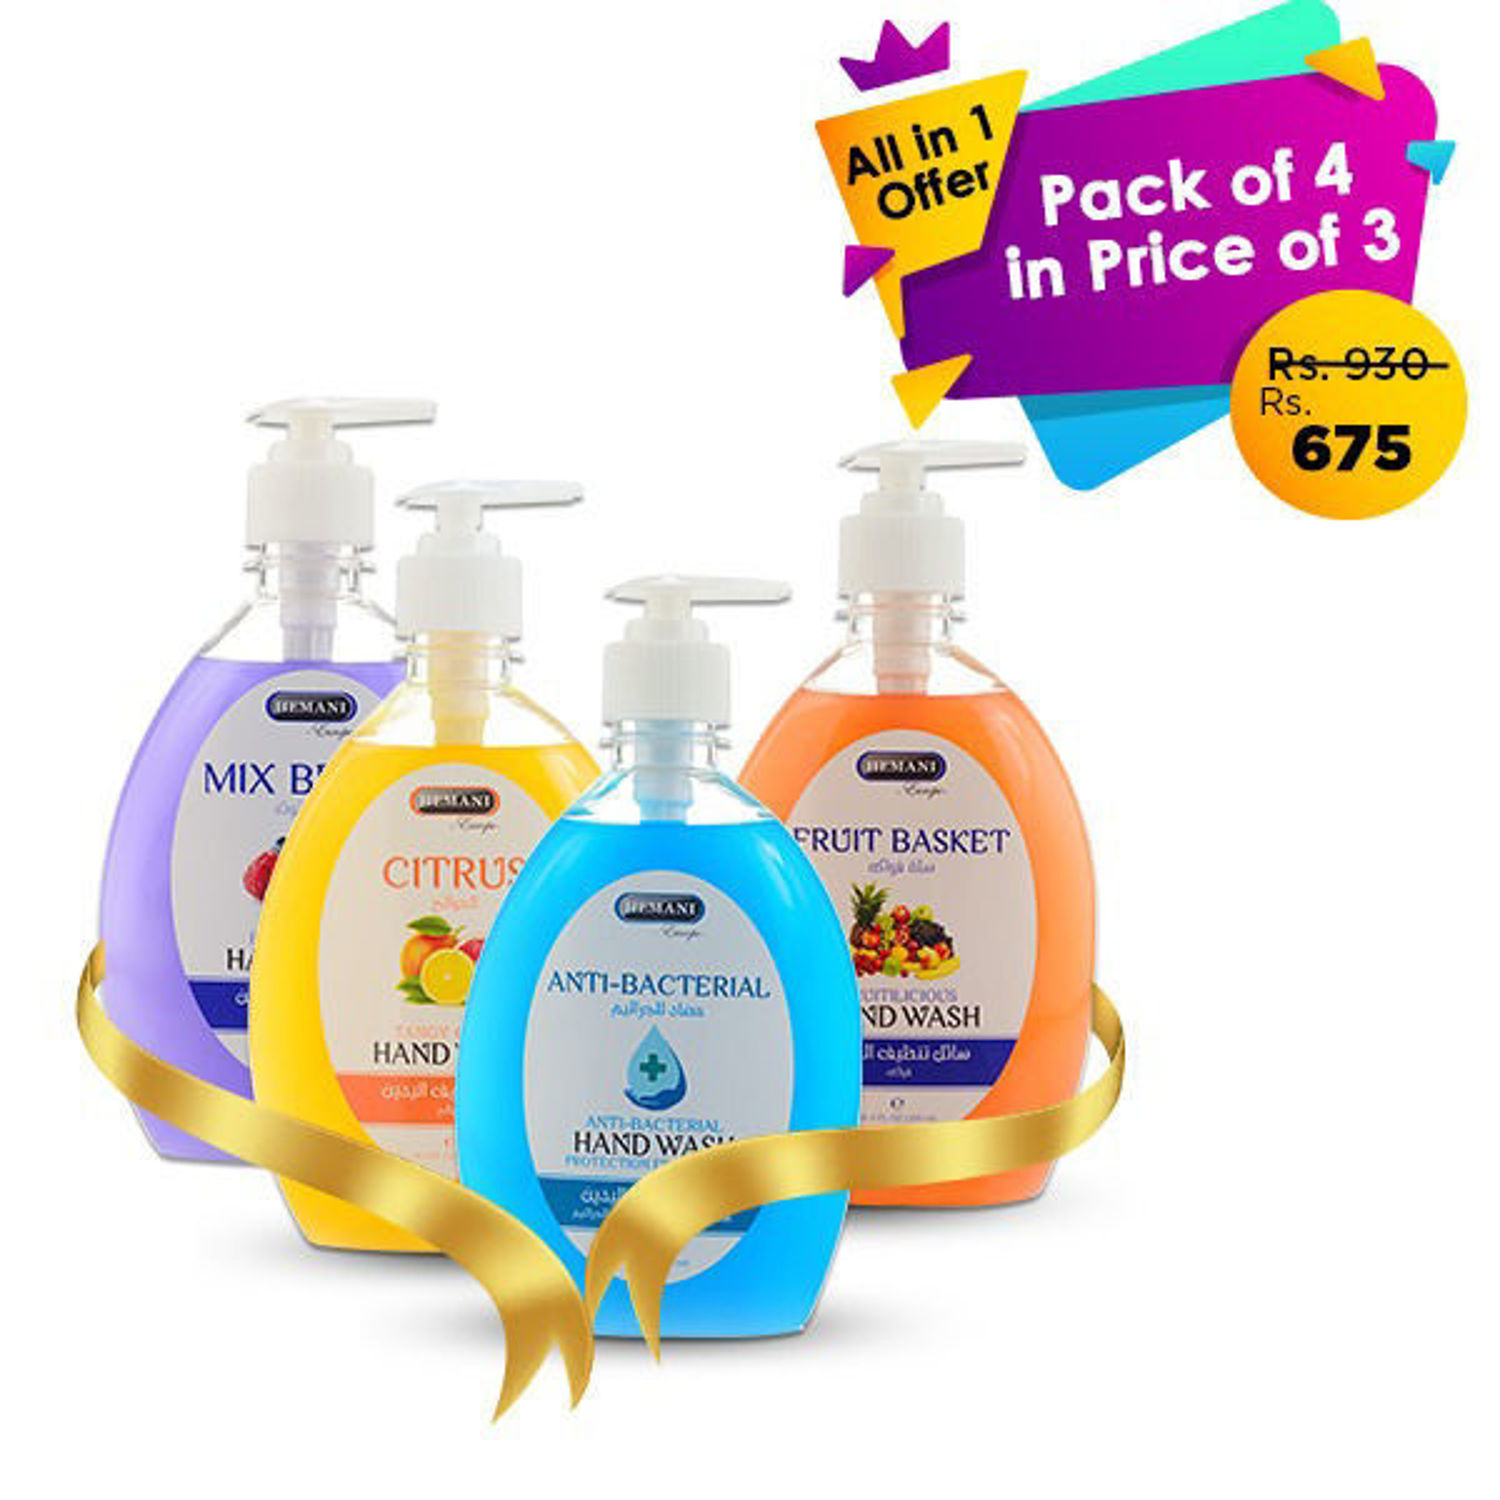 All in 1 pack of 4 in price of 3 (Hand Wash)